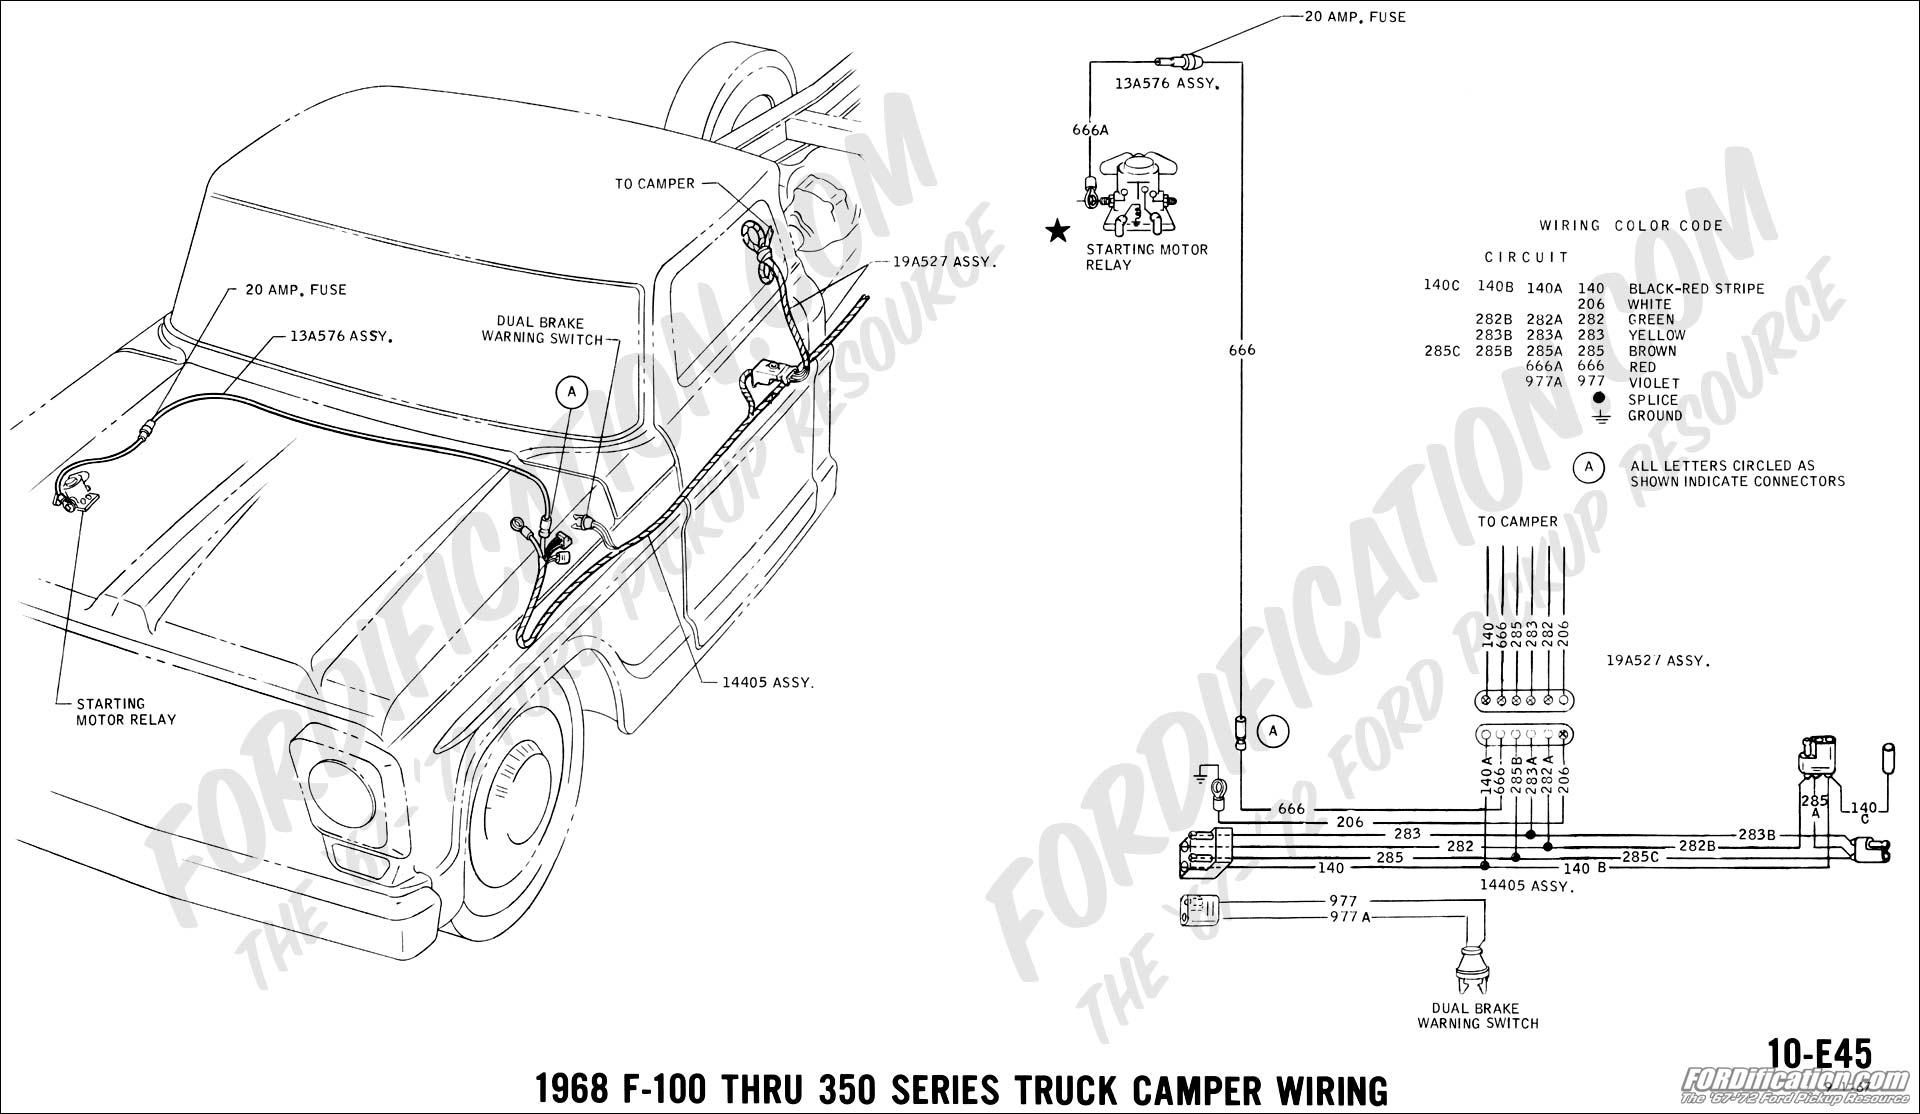 68 47 ford truck technical drawings and schematics section h wiring slide in camper wiring diagram at edmiracle.co